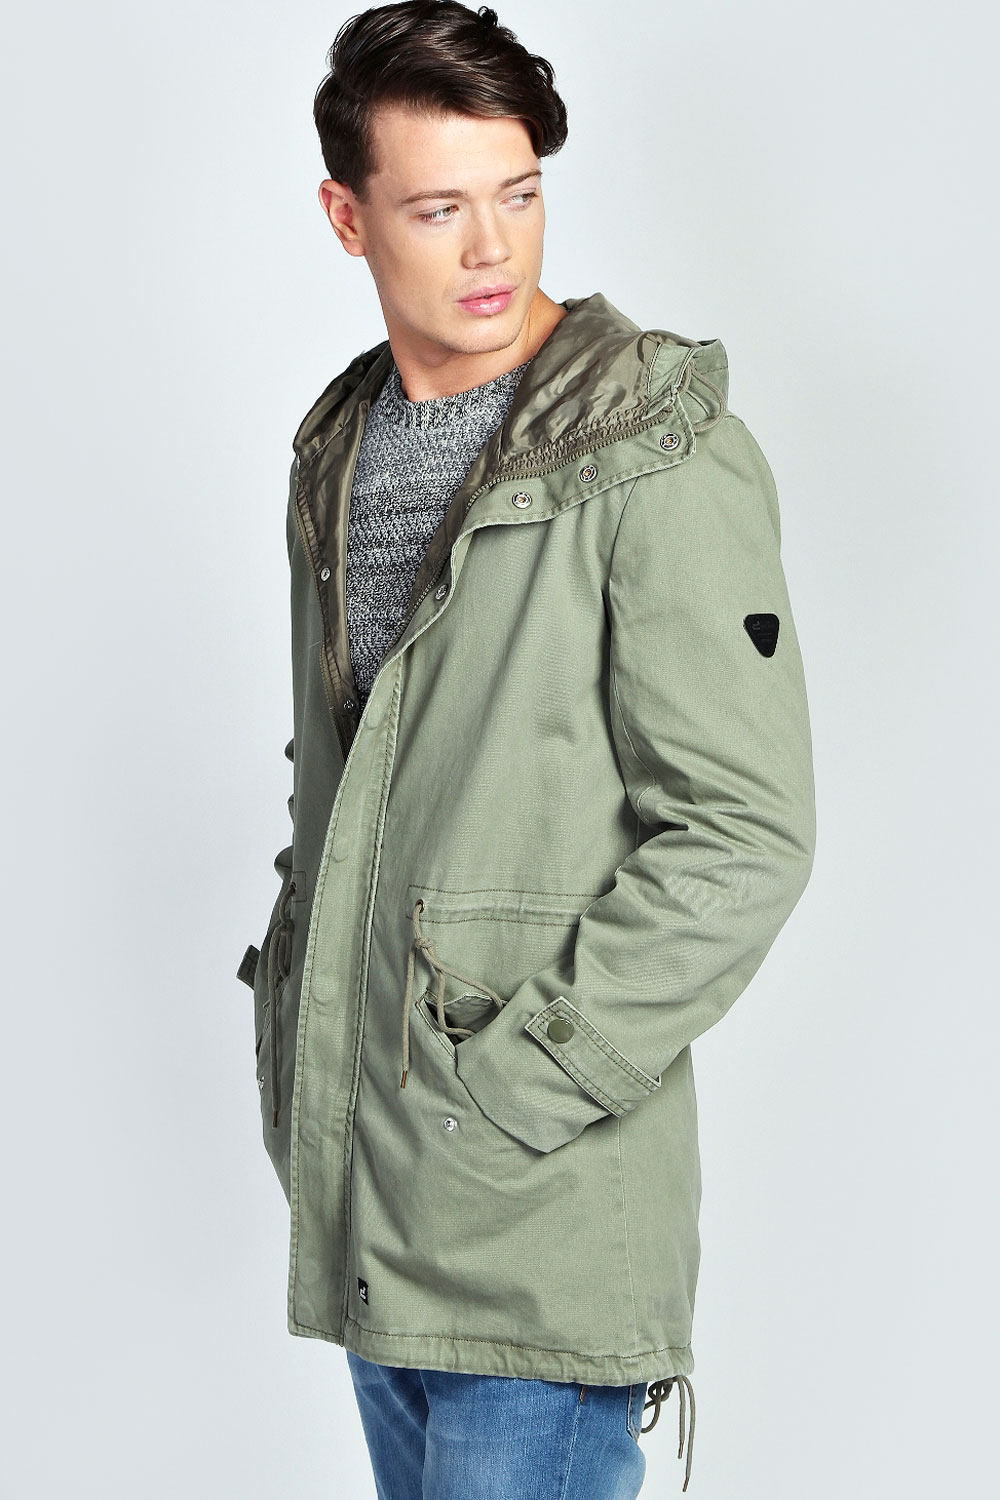 Boohoo Mens Lightweight Cotton Festival Cotton Parka Jacket in ...